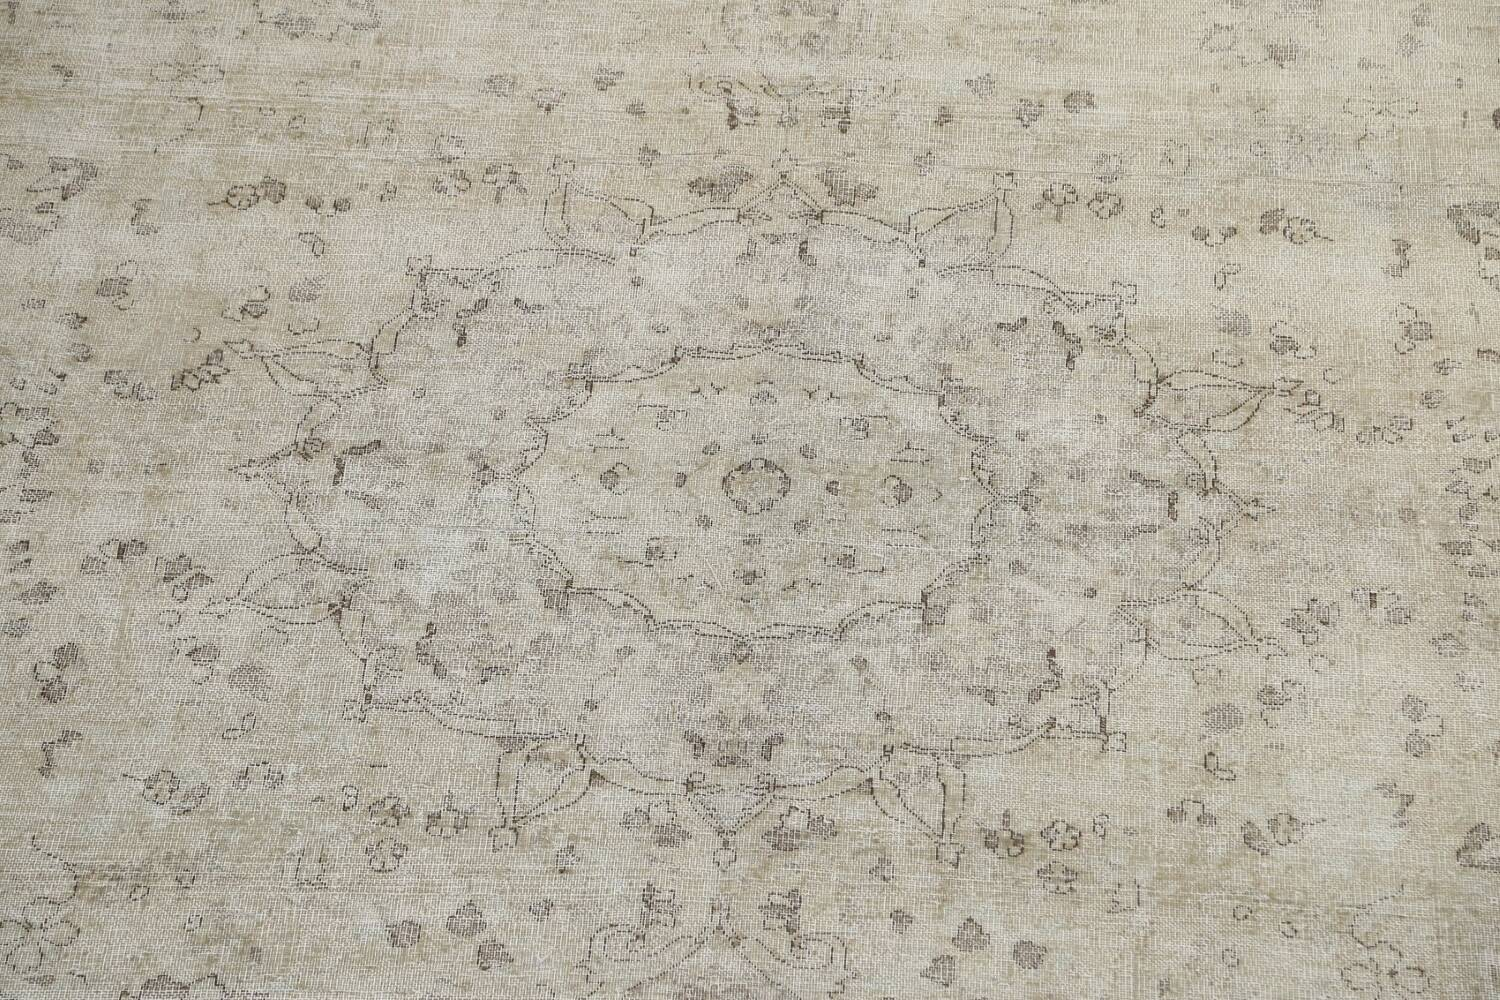 Muted Distressed Floral Tabriz Persian Area Rug 10x13 image 4